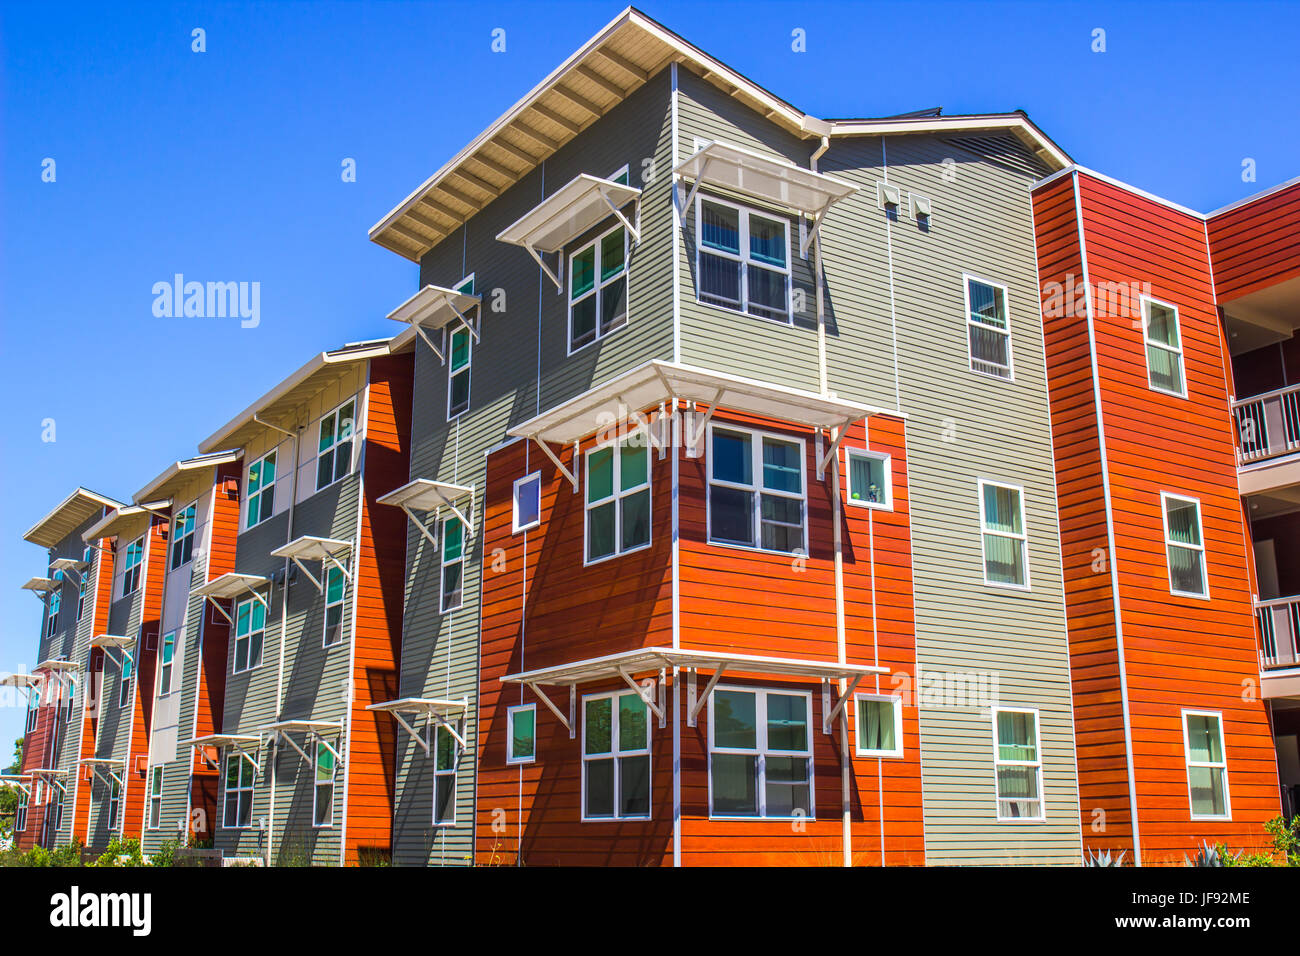 Multi Colored Three Story Building - Stock Image